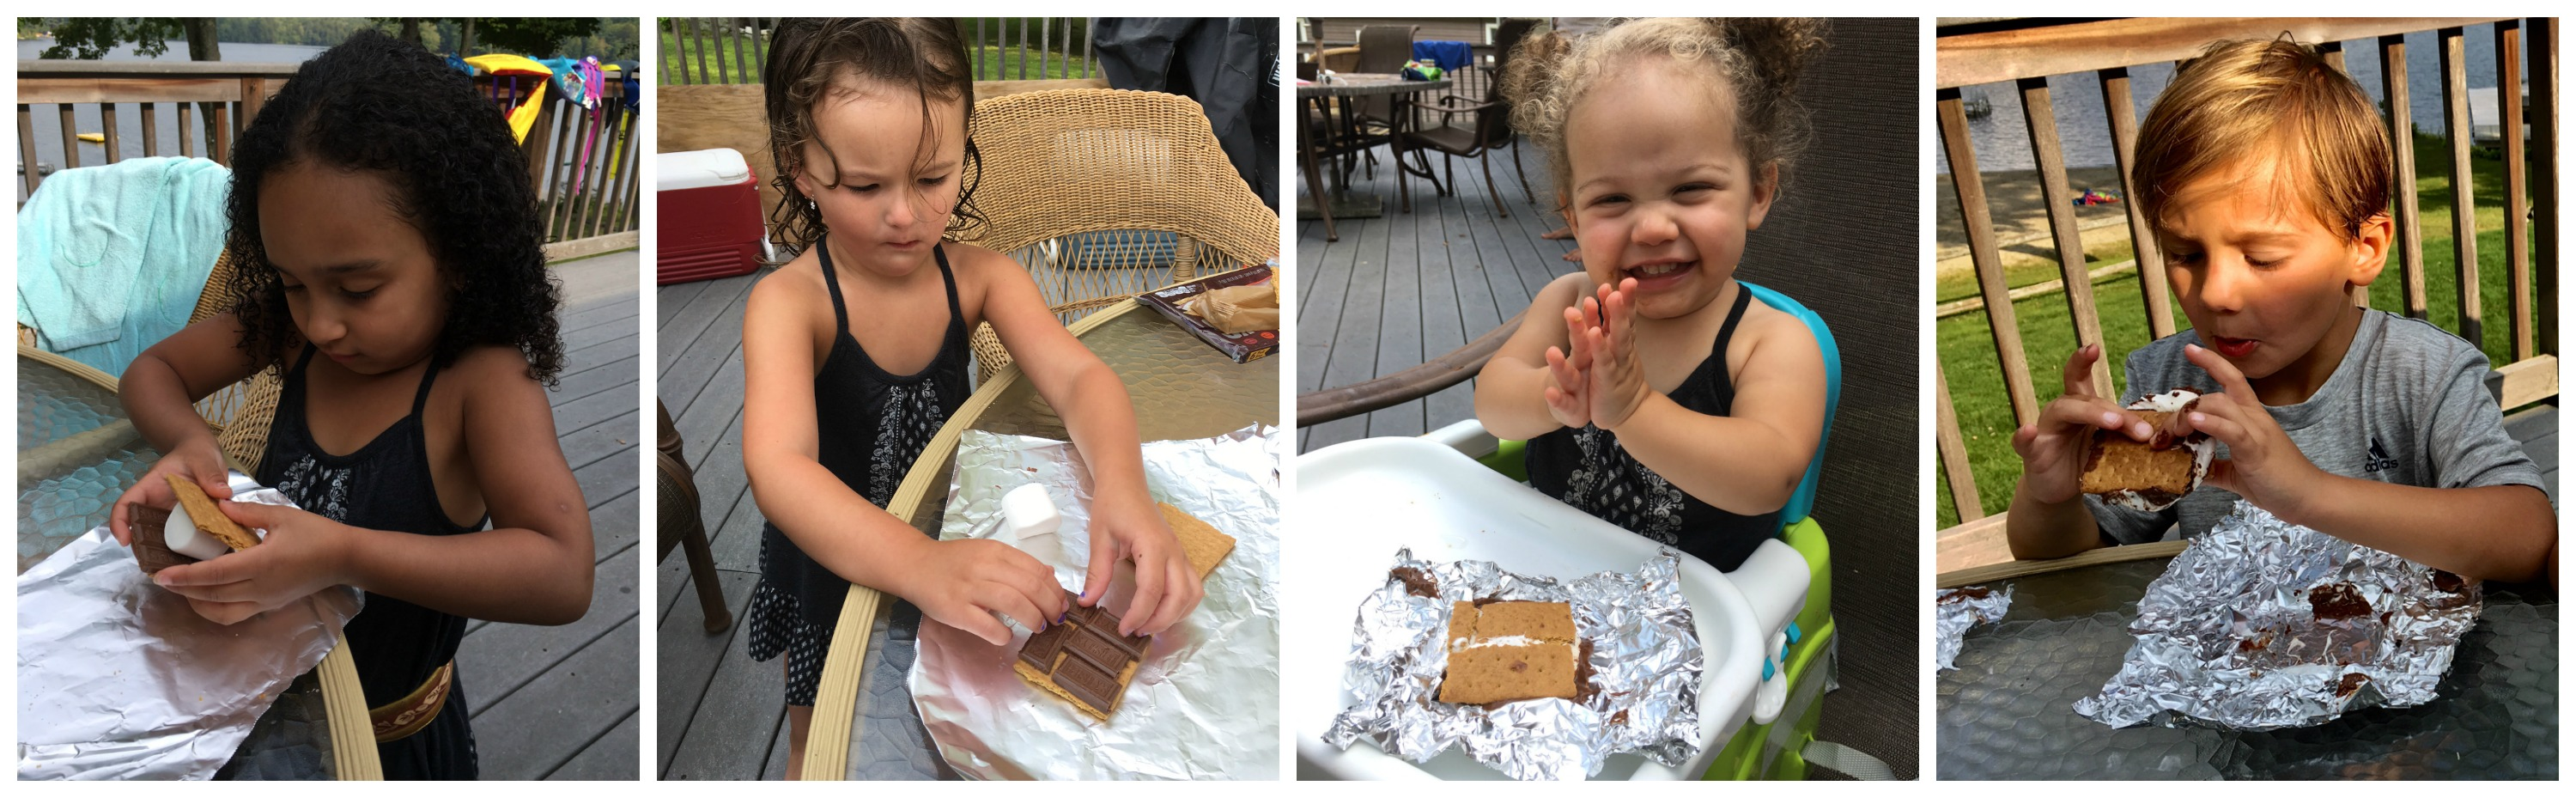 When you don't have a campfire nearby and need a S'mores, just fire up the grill for ooey gooey melty Grilled S'mores! fun for kids } dessert } grilling | chocolate | mrshmallow | graham crackers | cookies